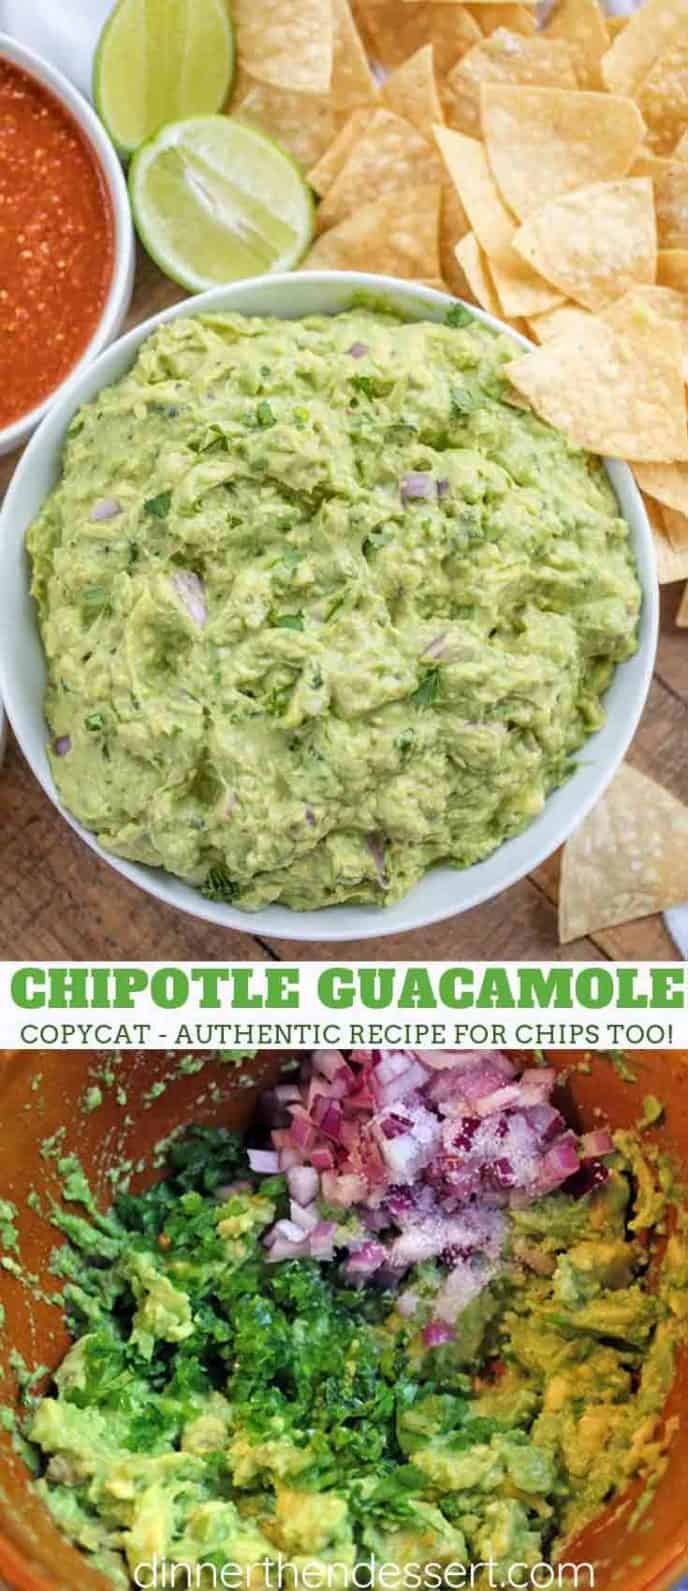 Chipotle Restaurant Guacamole Recipe